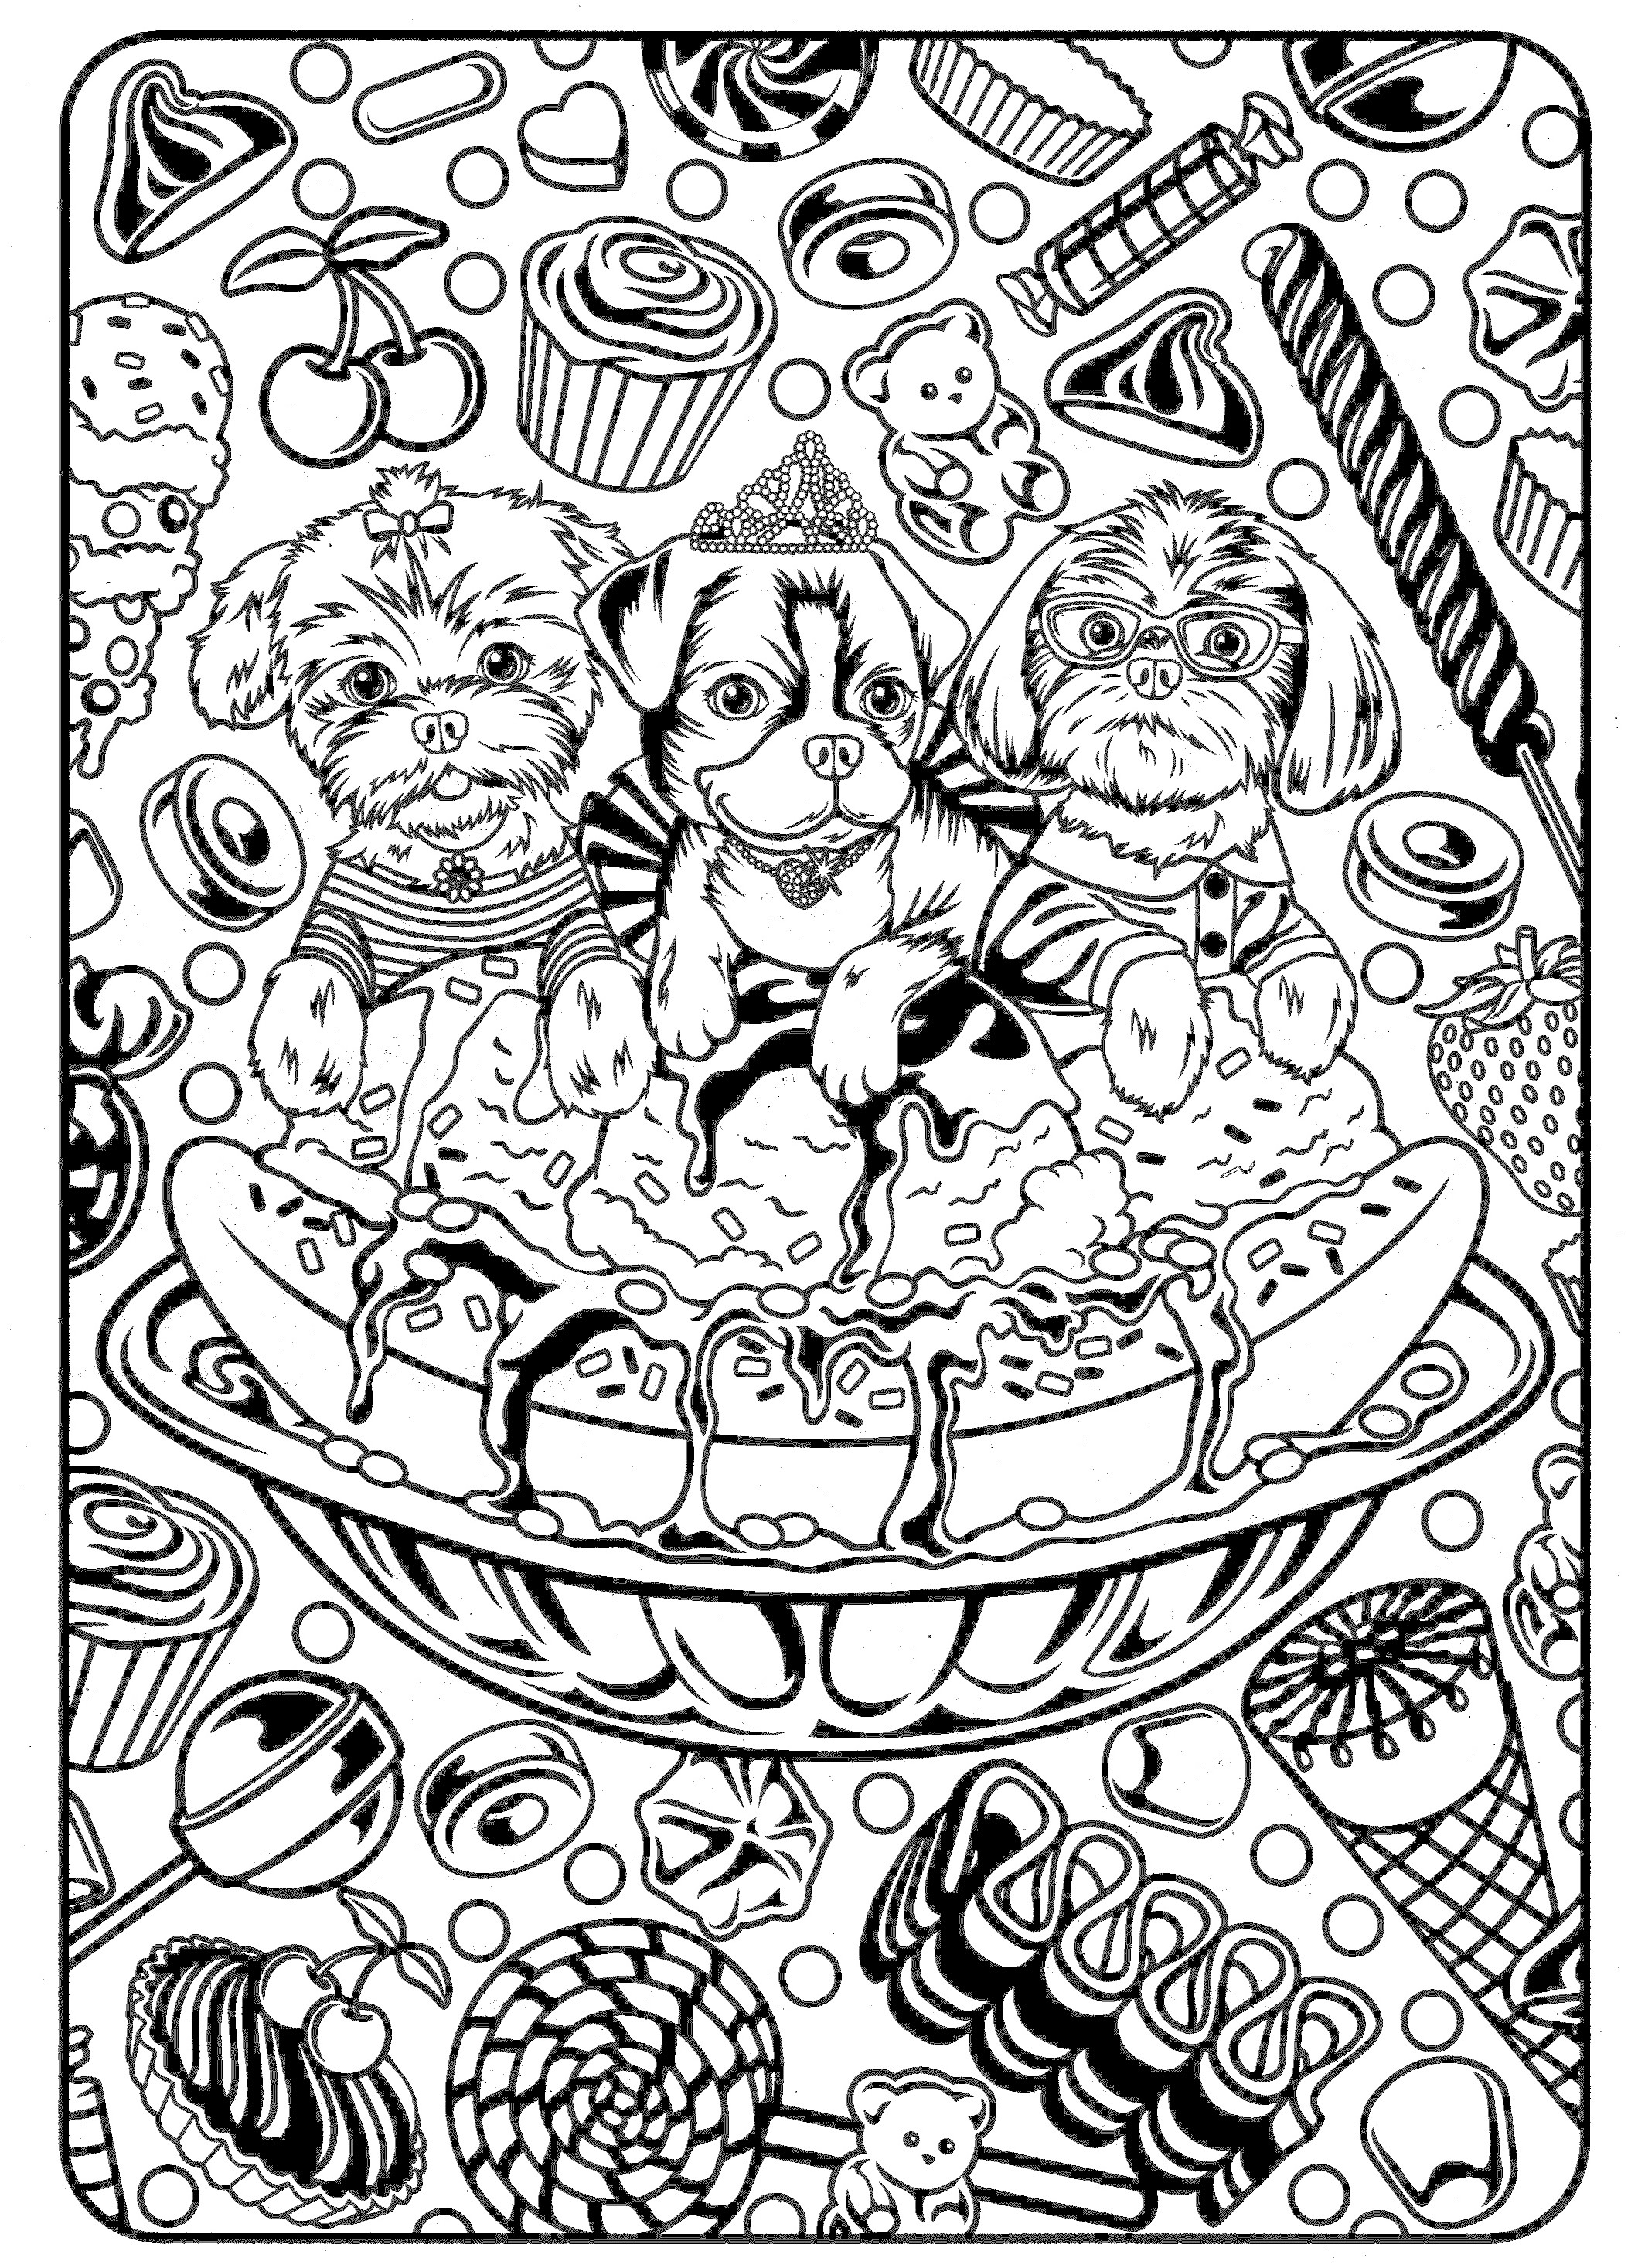 coloring free cute coloring pages best coloring pages for kids coloring free